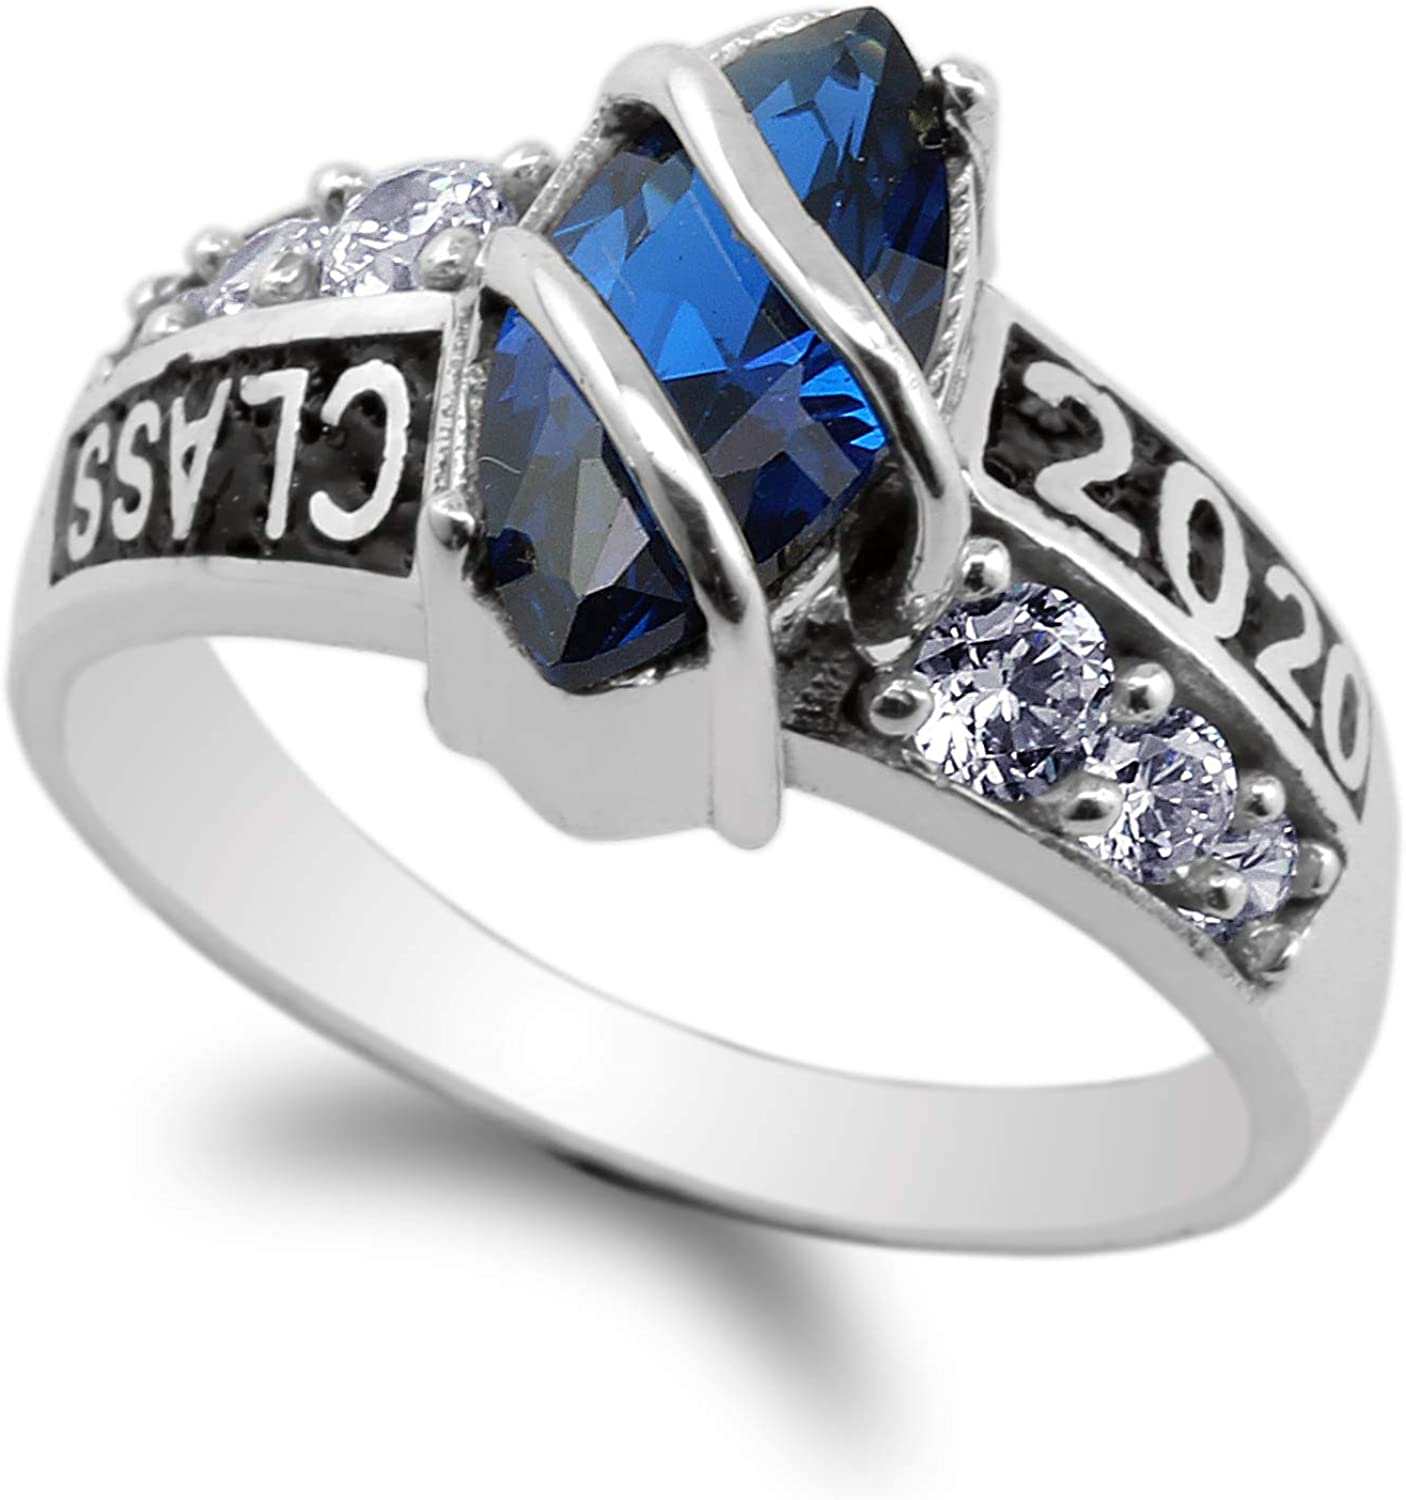 925 Sterling Silver Class of Marquise Sapphire Blue 1.25ct Max 80% OFF 2020 Cheap bargain